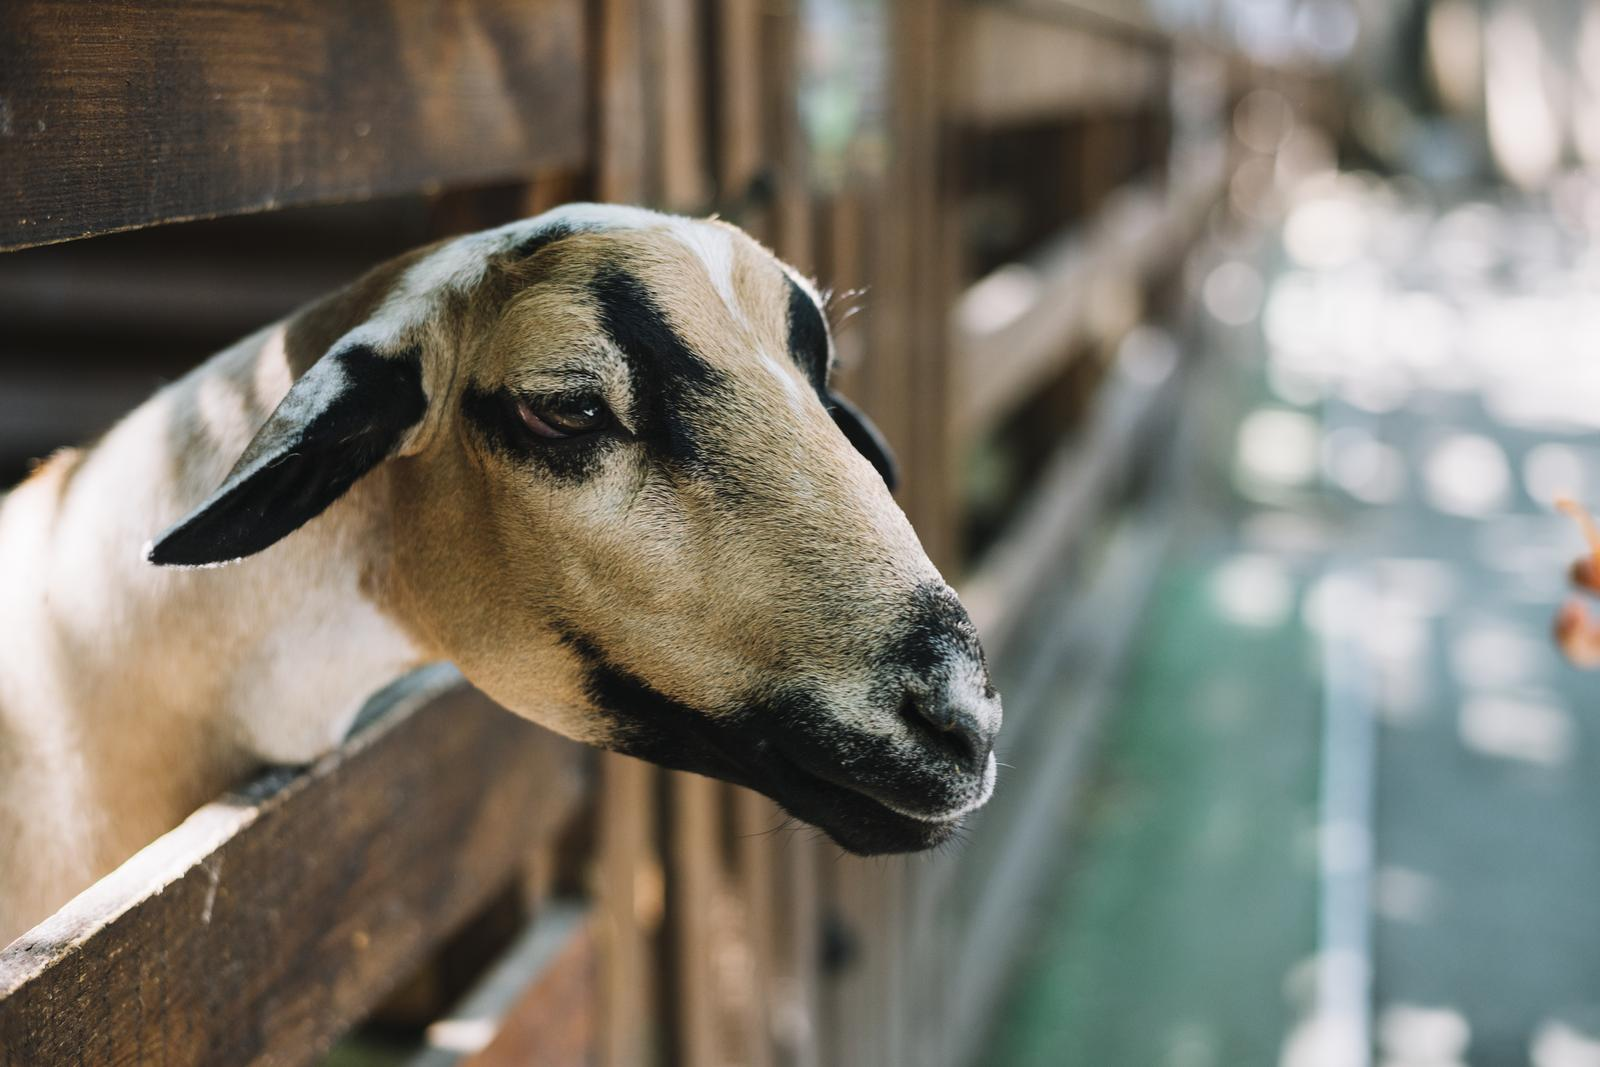 Raising of sheep and goats in Jõgeva county